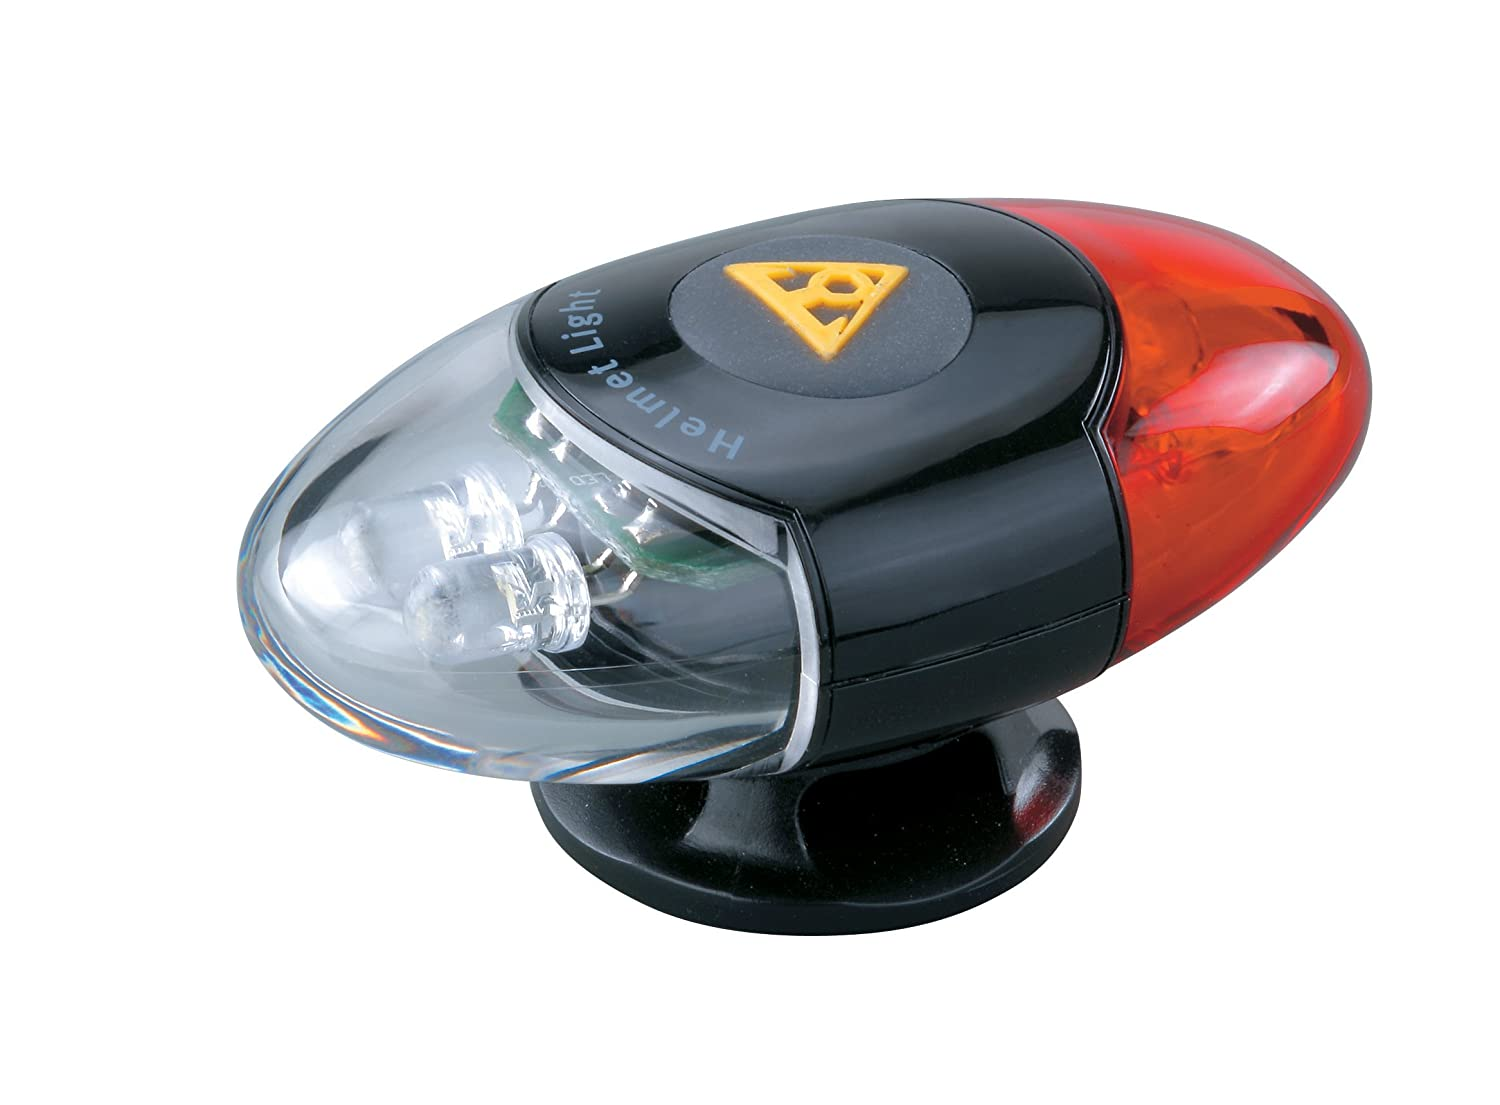 Topeak HeadLux Bicycle or Safety Helmet Light $10 + Free shipping w/ Prime or $25+